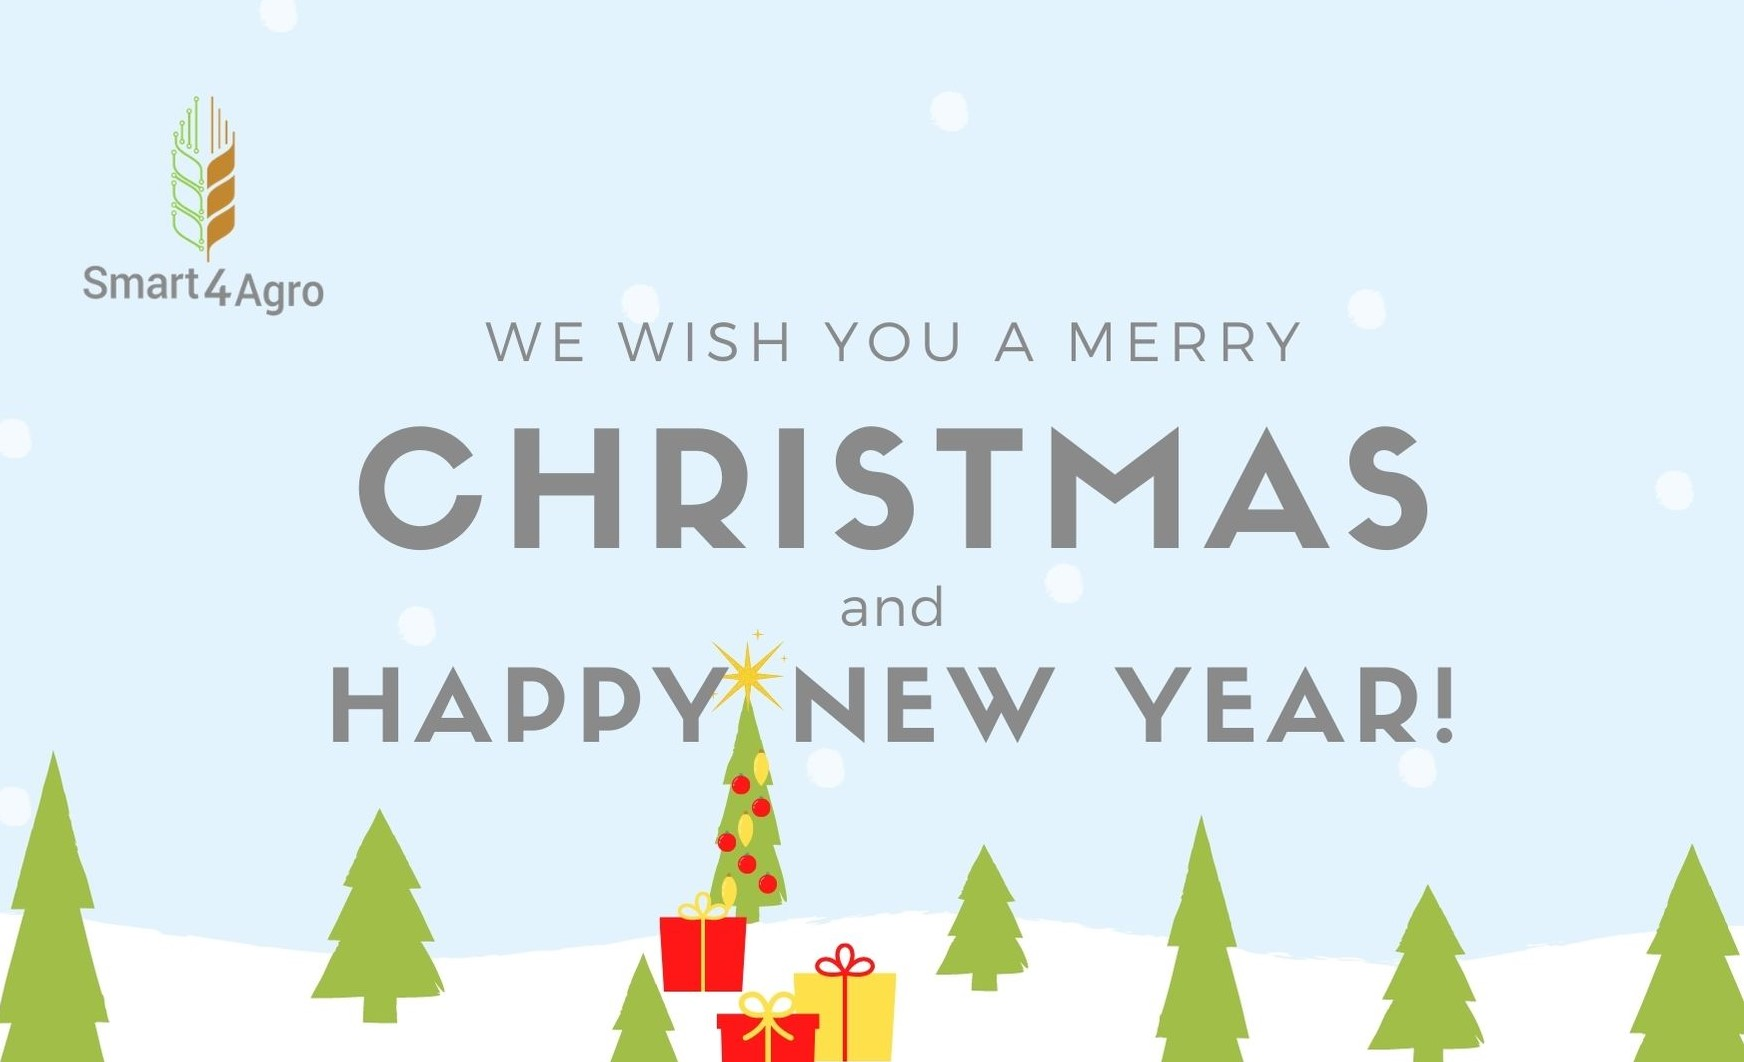 We wish you a Merry Christmas and Happy New Year - Smart4Agro